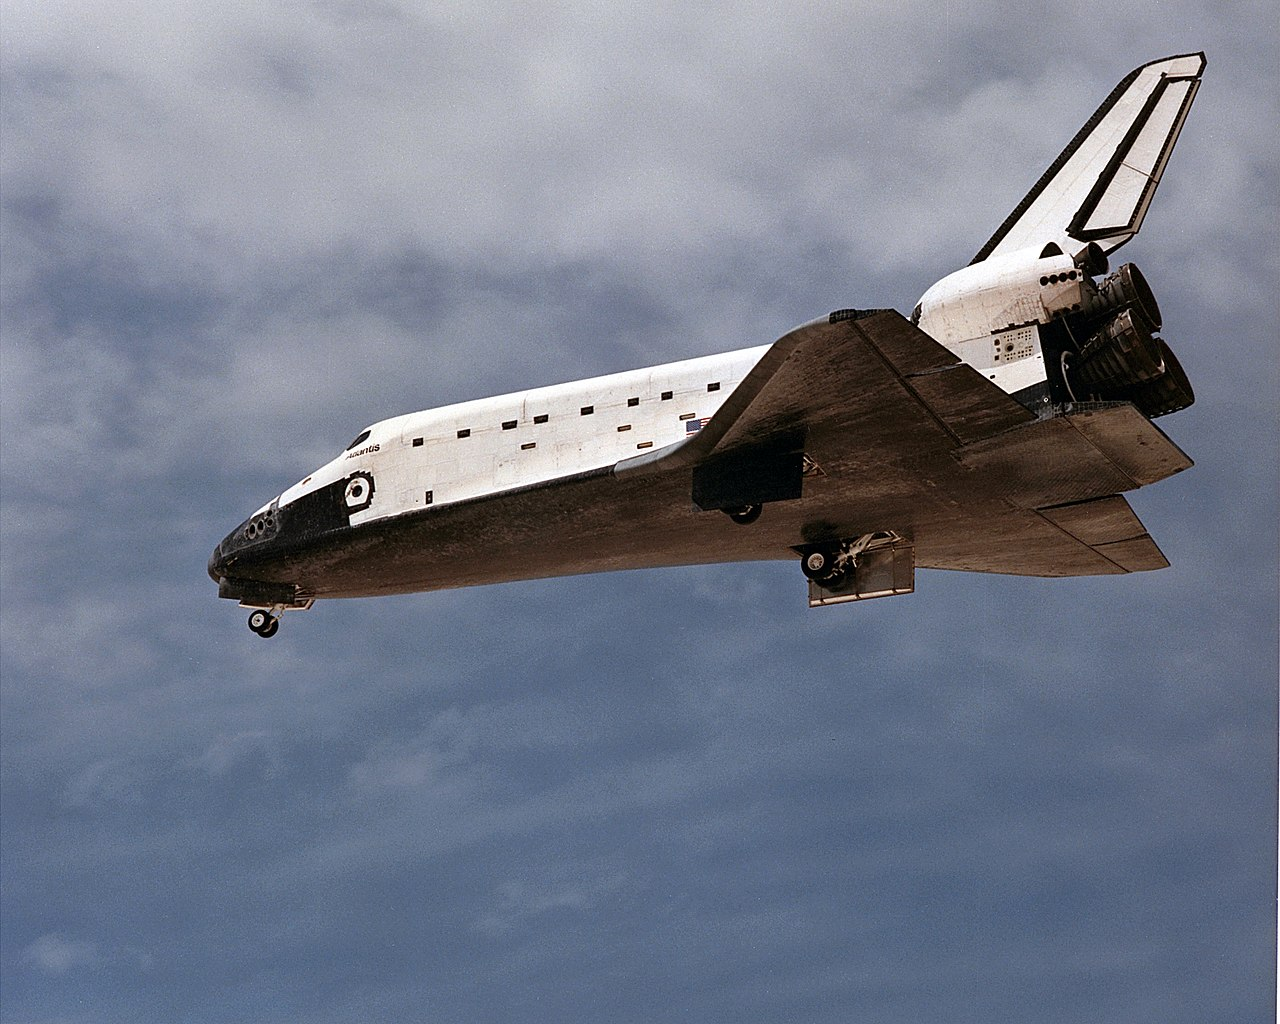 space shuttle after landing - photo #21